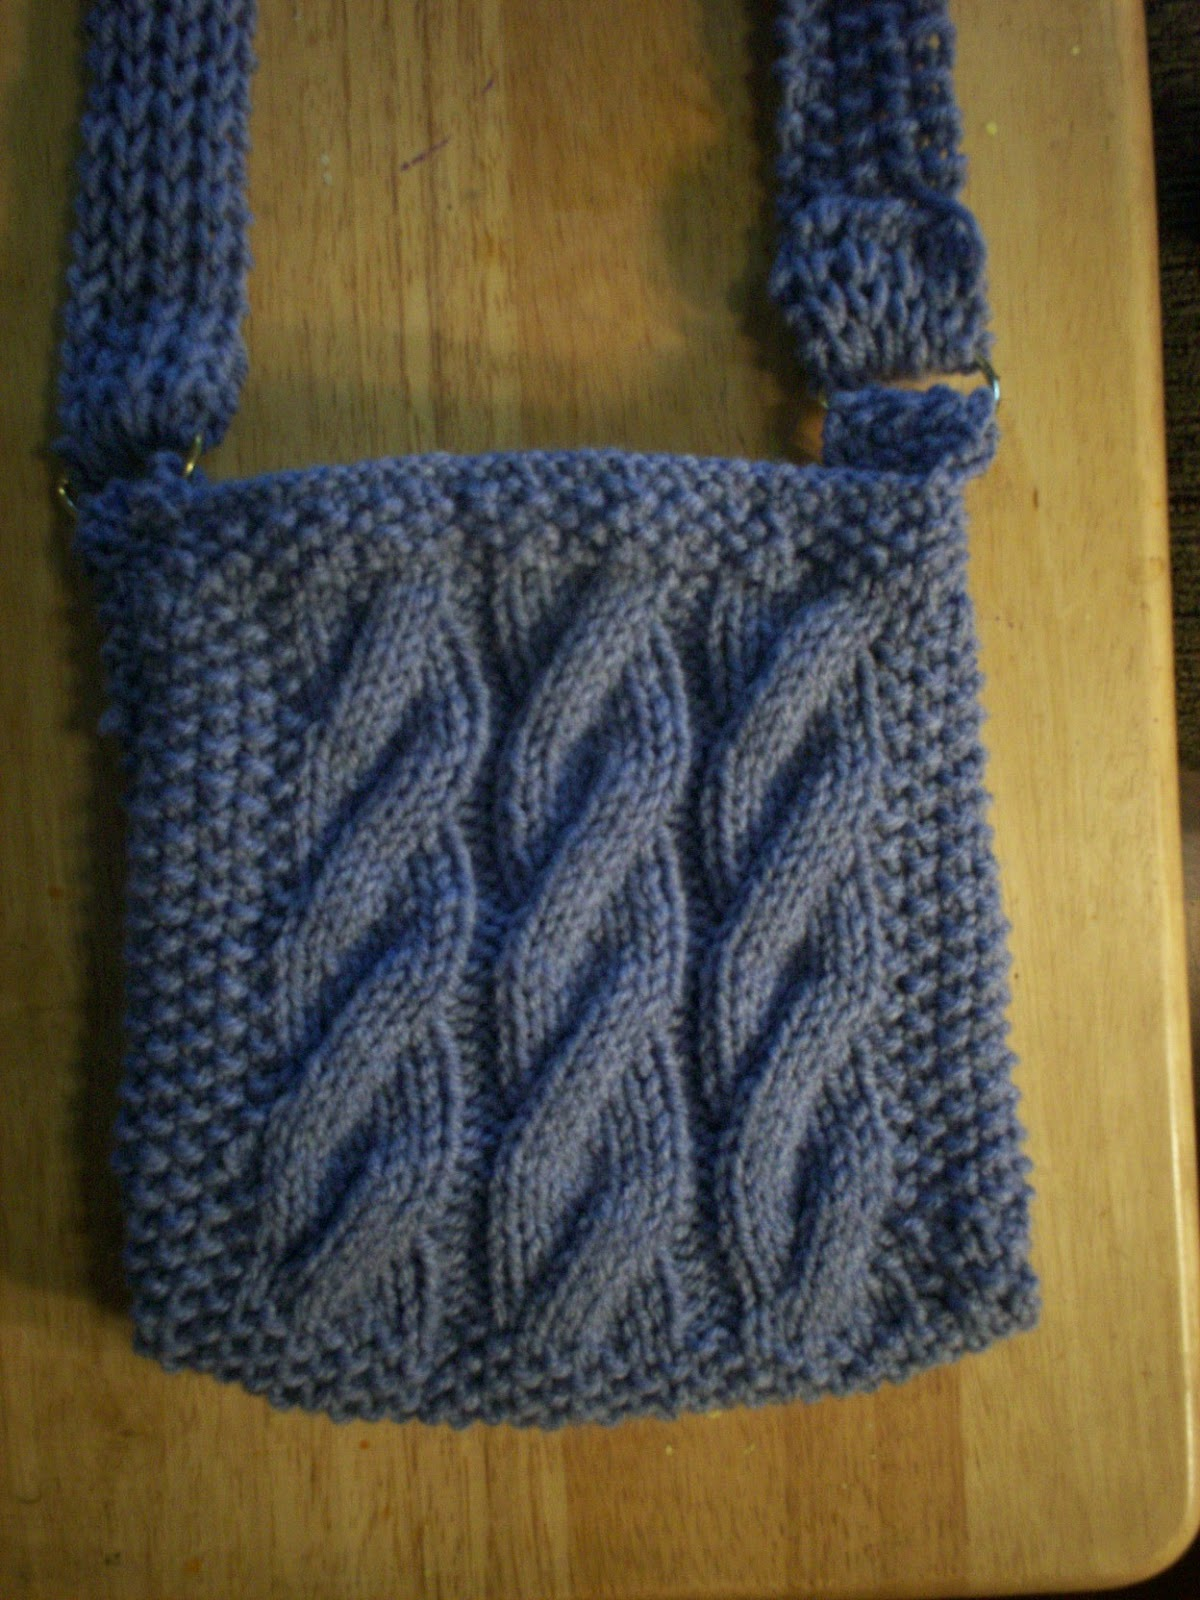 Purse Knitting Patterns For Beginners : Knitting Patterns for the beginner or the advanced knitter: Heathers Cab...